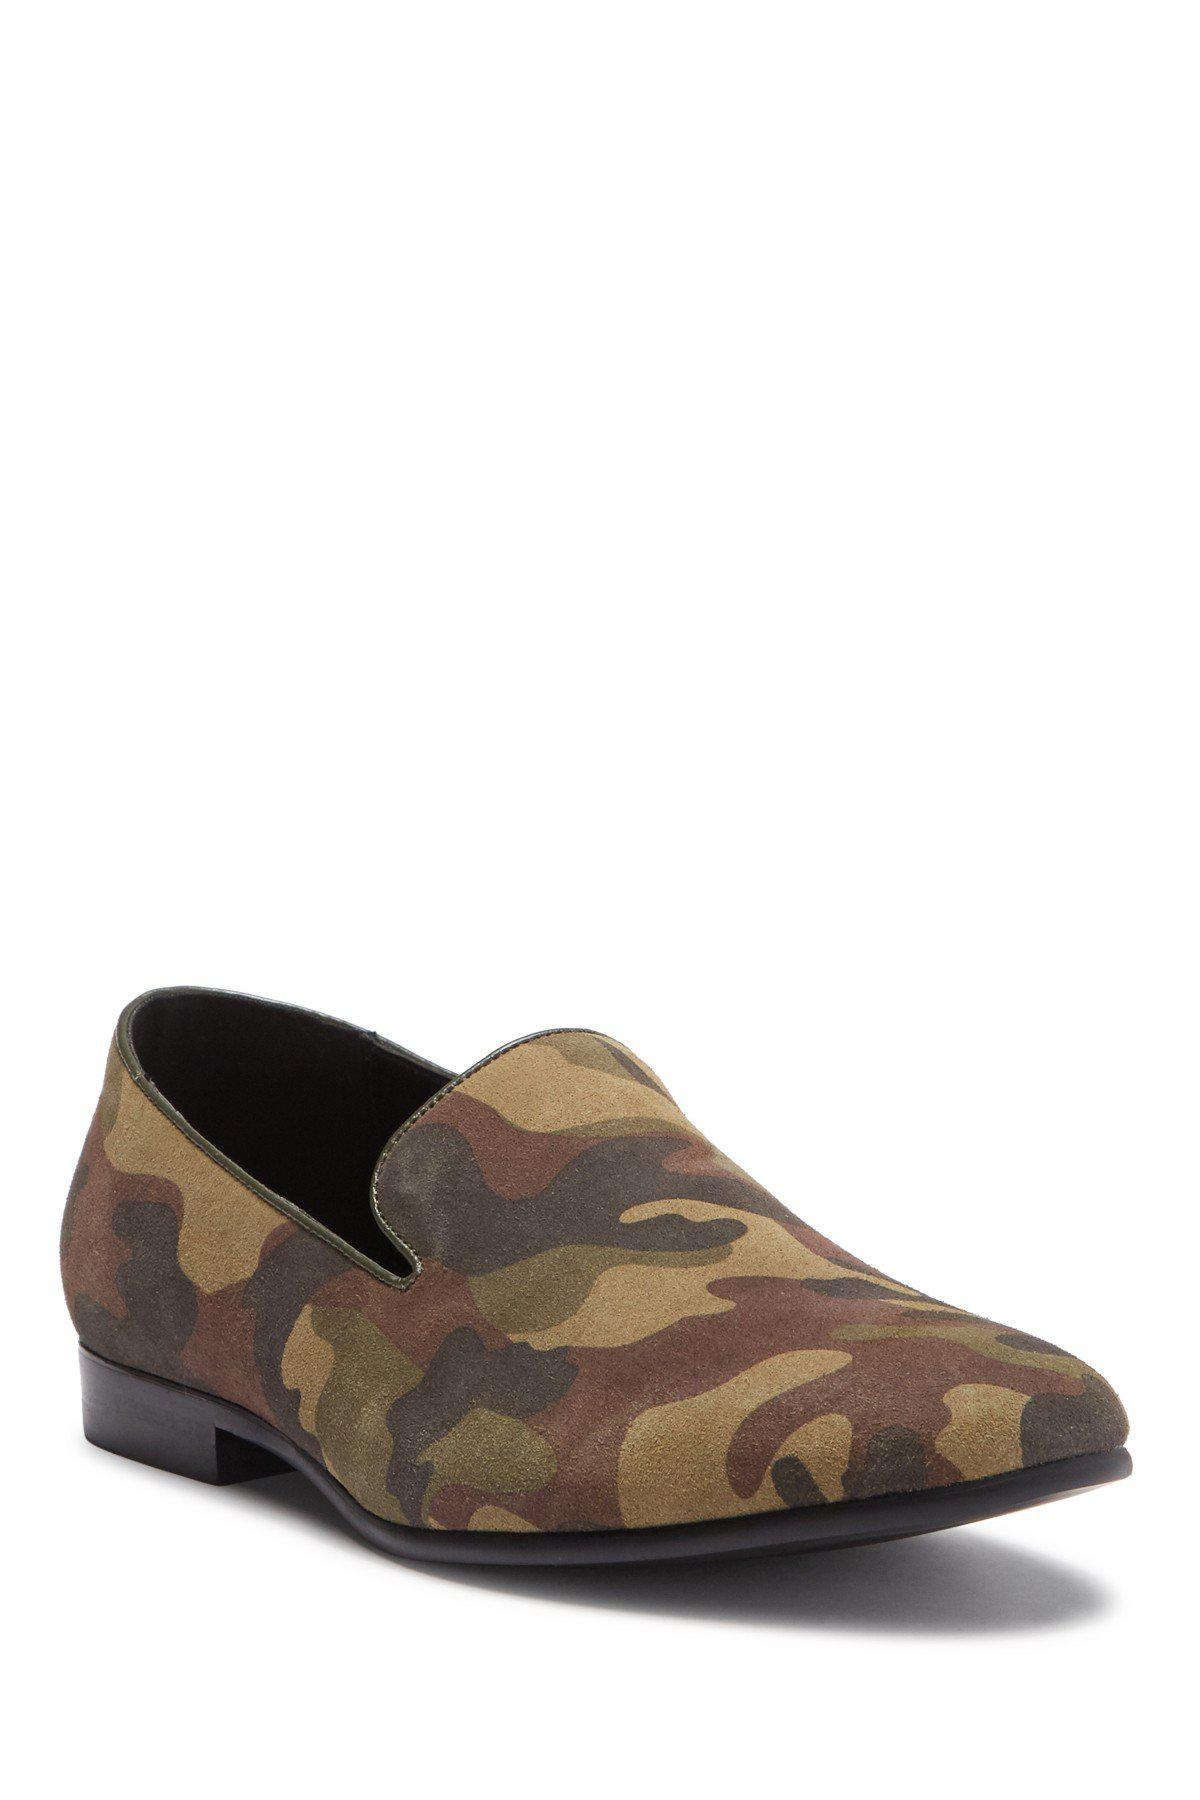 Kenneth Cole Reaction Trophy Loafer-Atmark Trading